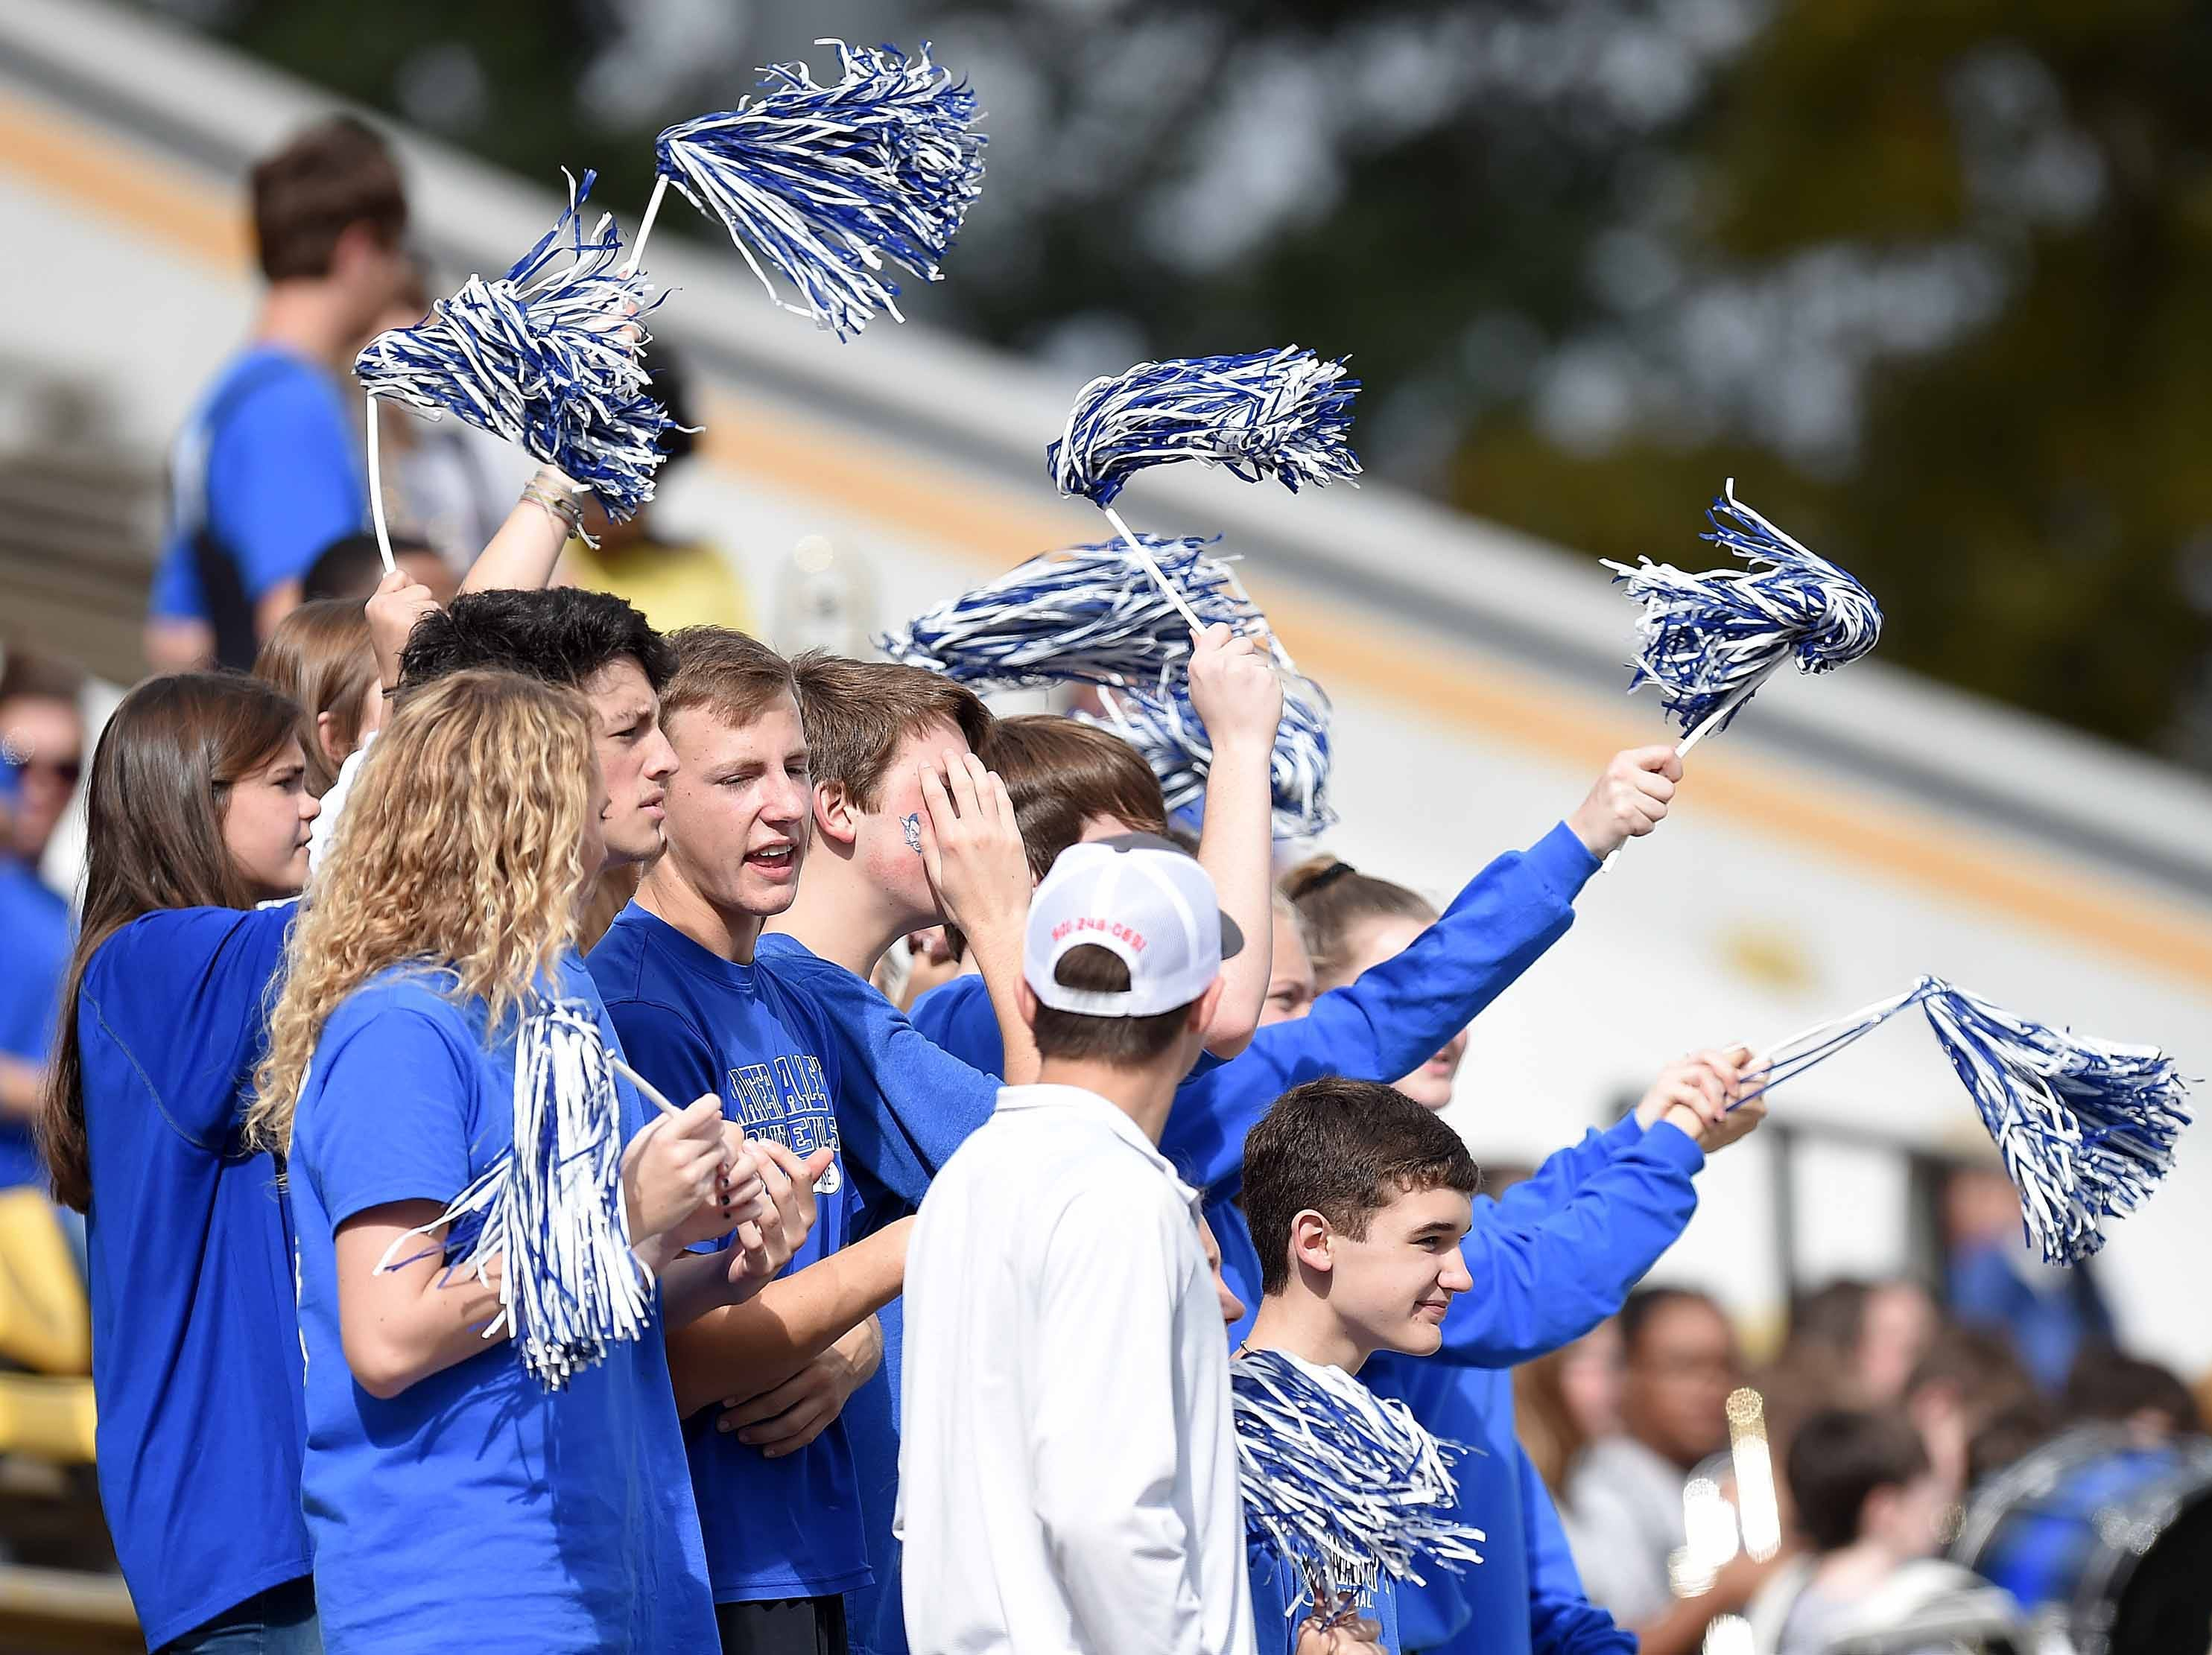 Water Valley fans cheer for the Blue Devils on Friday, November 20, 2018, in the MHSAA BlueCross BlueShield Gridiron Classic High School Football Championships in M.M. Roberts Stadium on the University of Southern Mississippi campus in Hattiesburg, Miss.